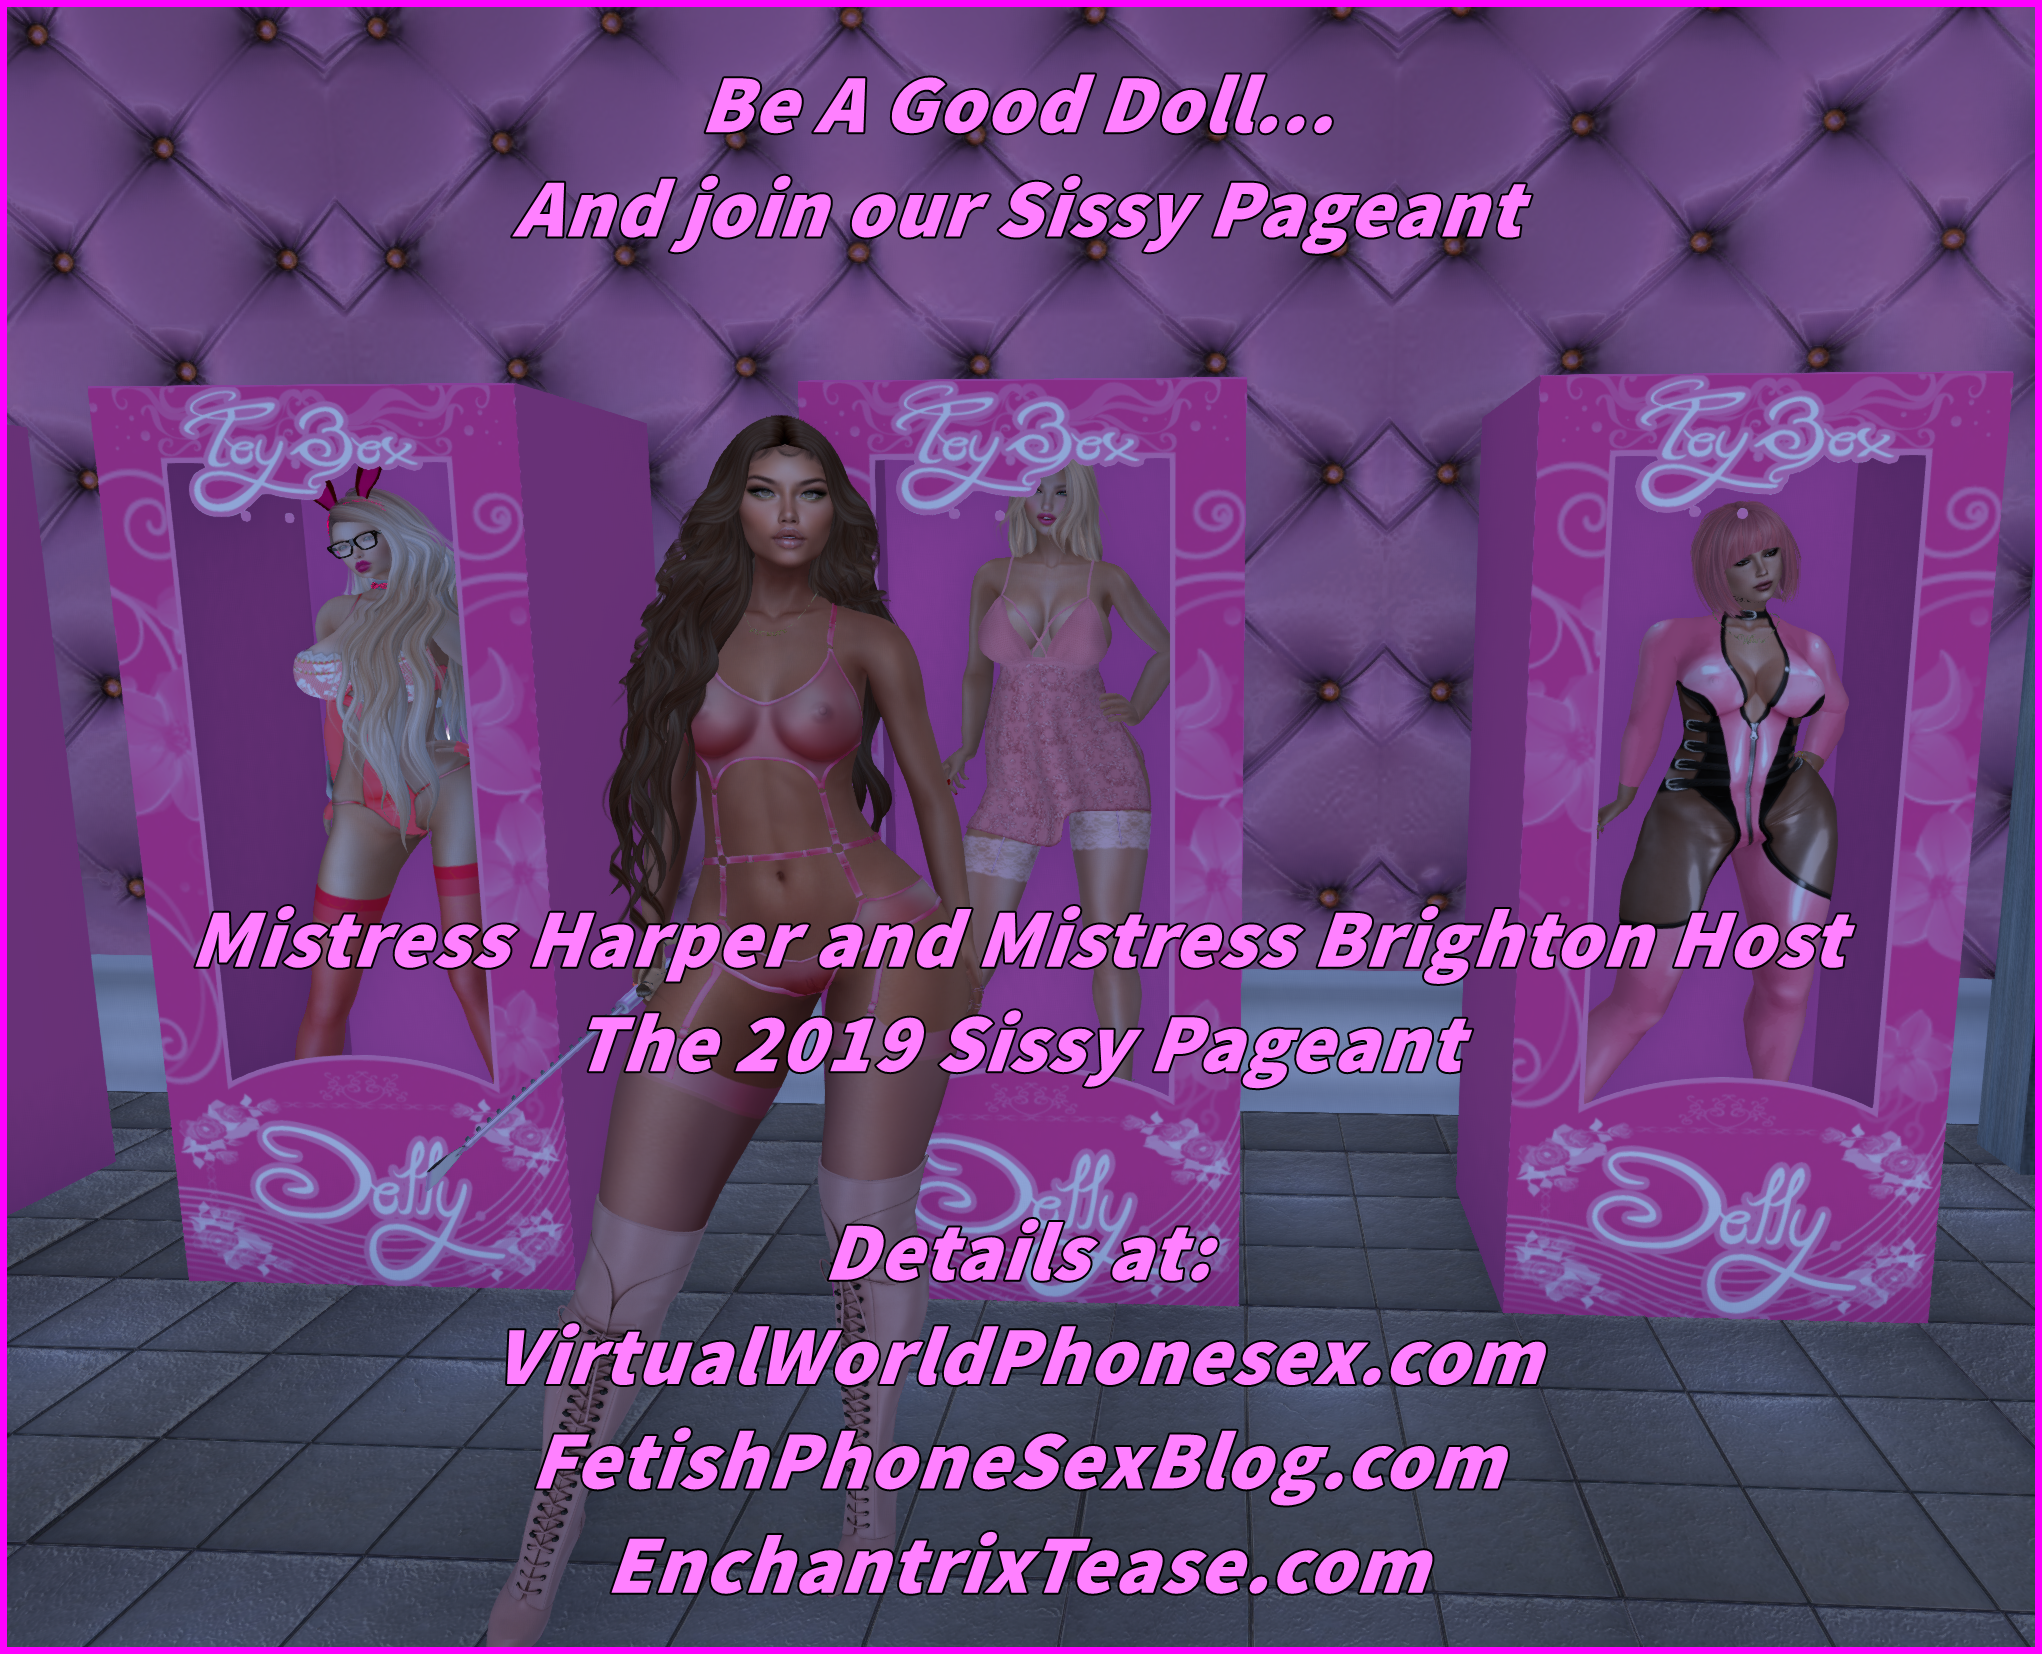 2019 Sissy Pageant